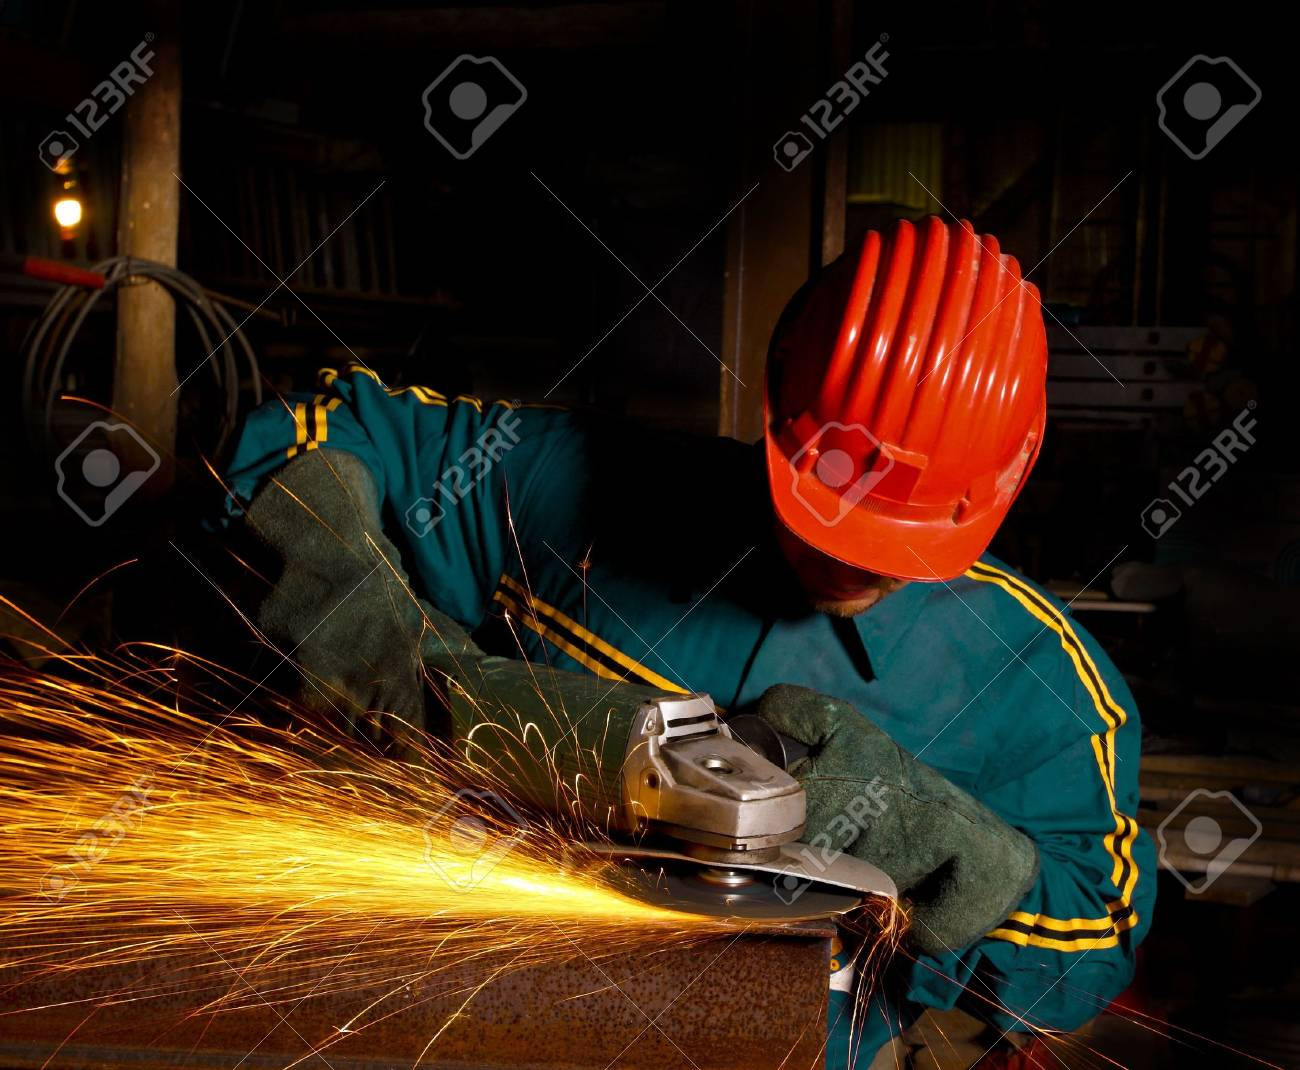 heavy industry manual worker with grinder Stock Photo - 3793002